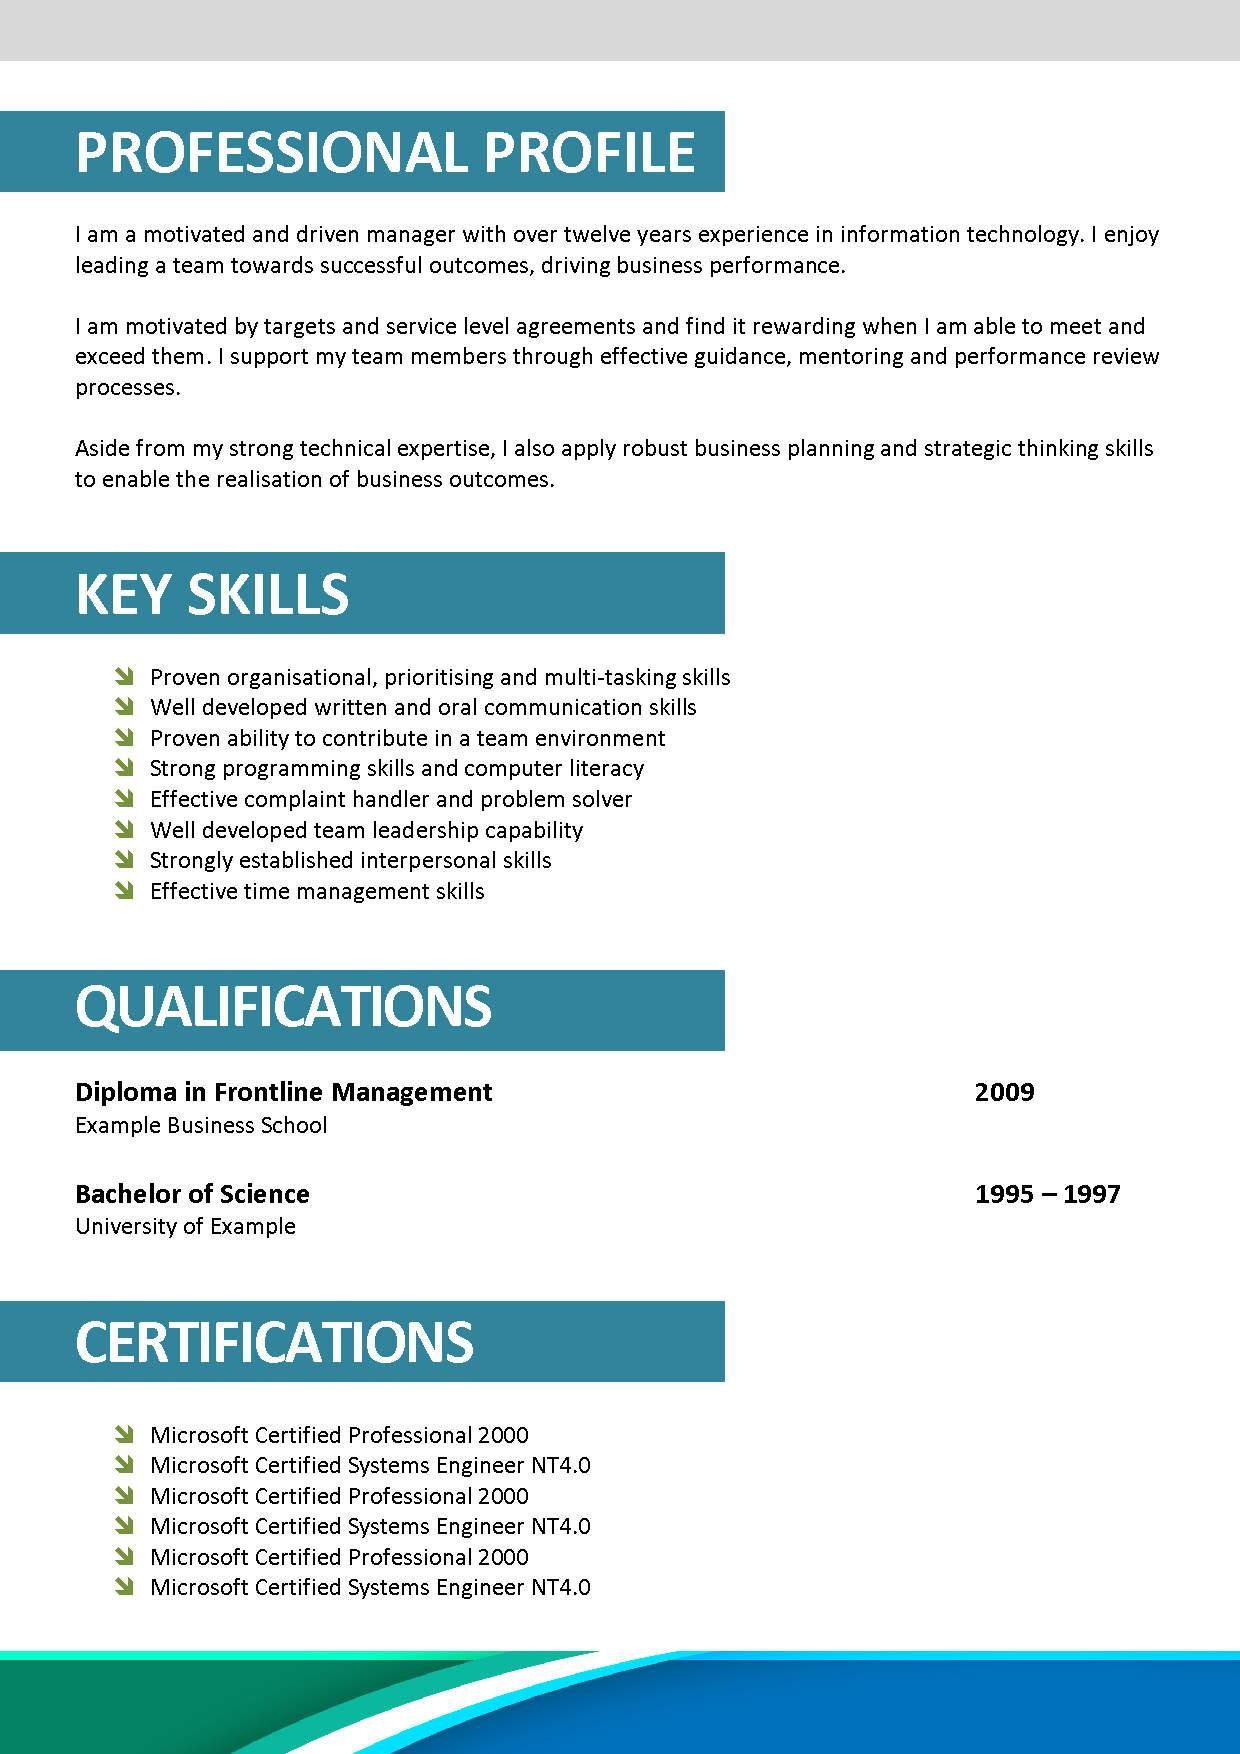 profile resume samples cover letter examples profiles writing statement personal - Business Profile Resume Sample